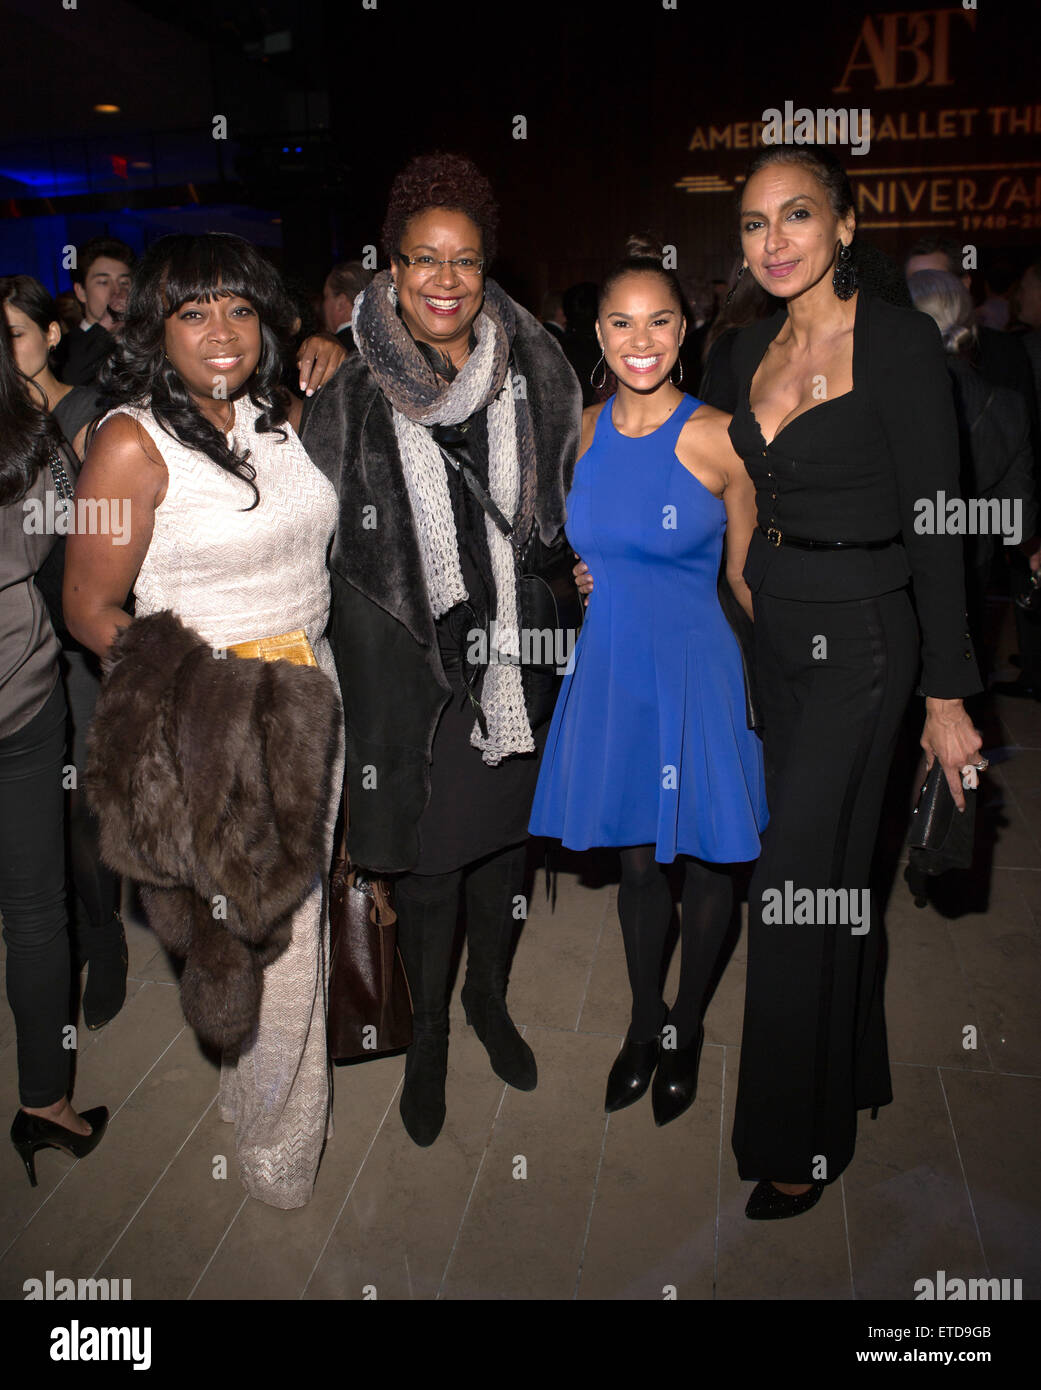 American Ballet Theatre hosts it's 75th anniversary celebration party at Alice Tully Hall - Arrivals  Featuring: - Stock Image